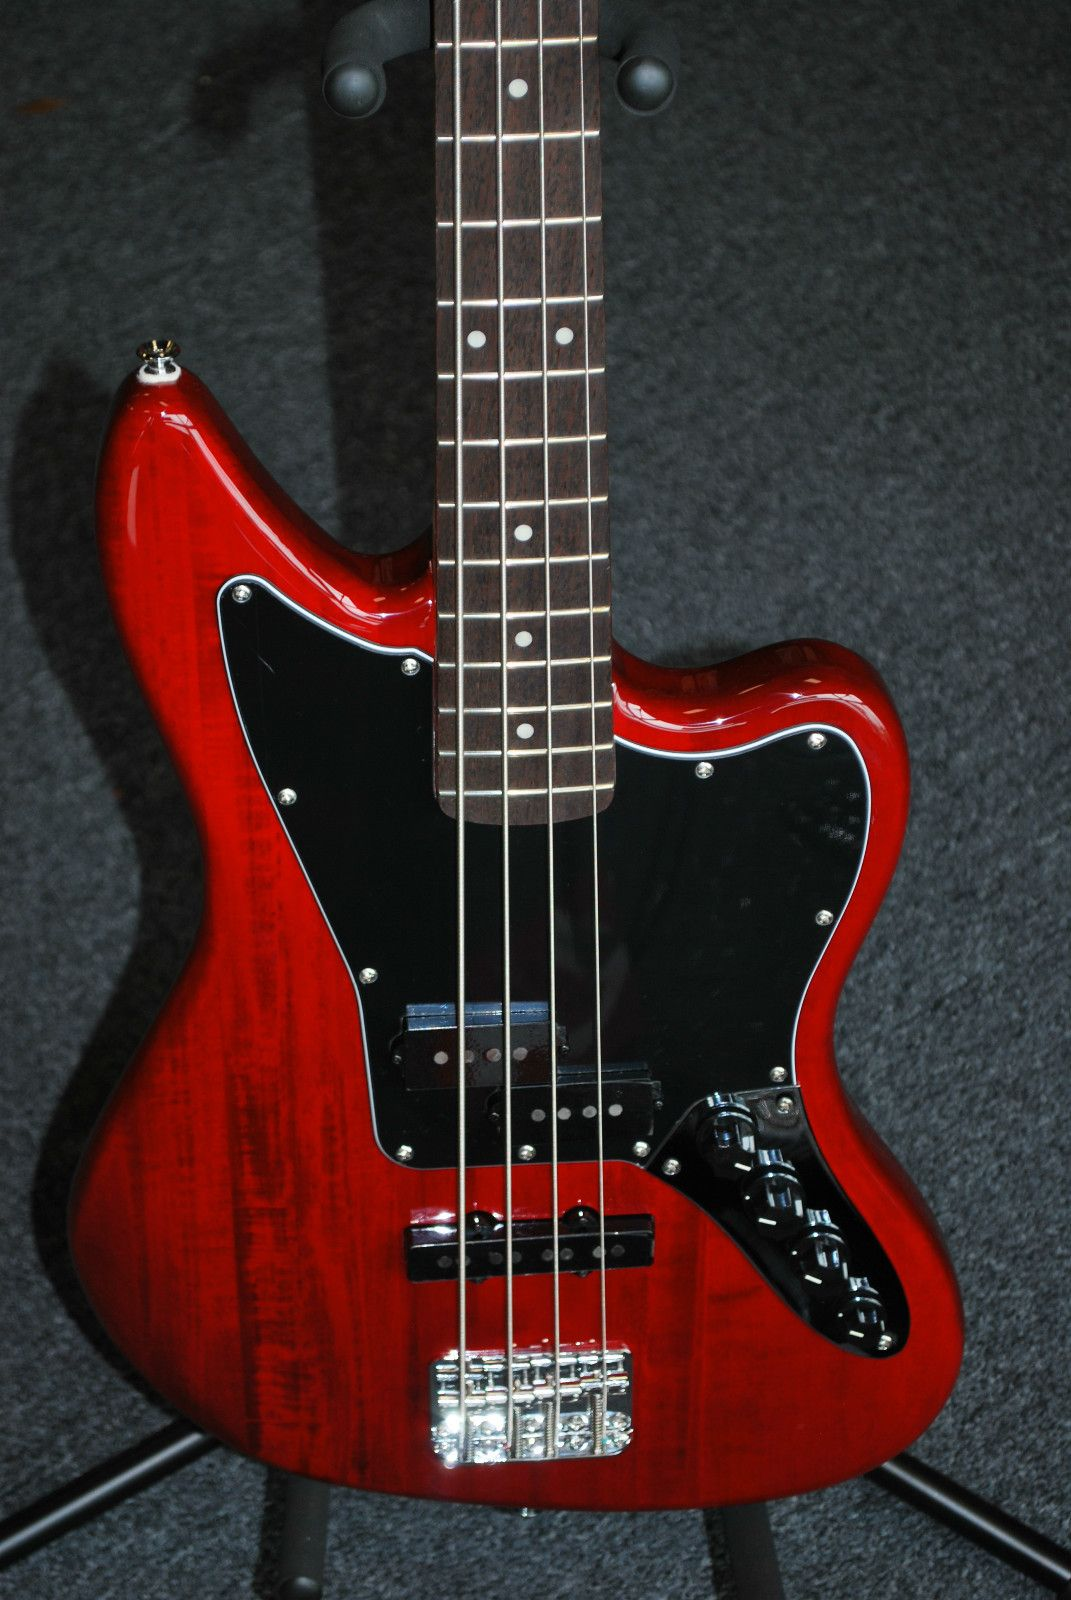 My eb bass squier vintage modified jazz bass - 2012 Squier Vintage Modified Jaguar Special Bass Trans Red Nearly New 7743